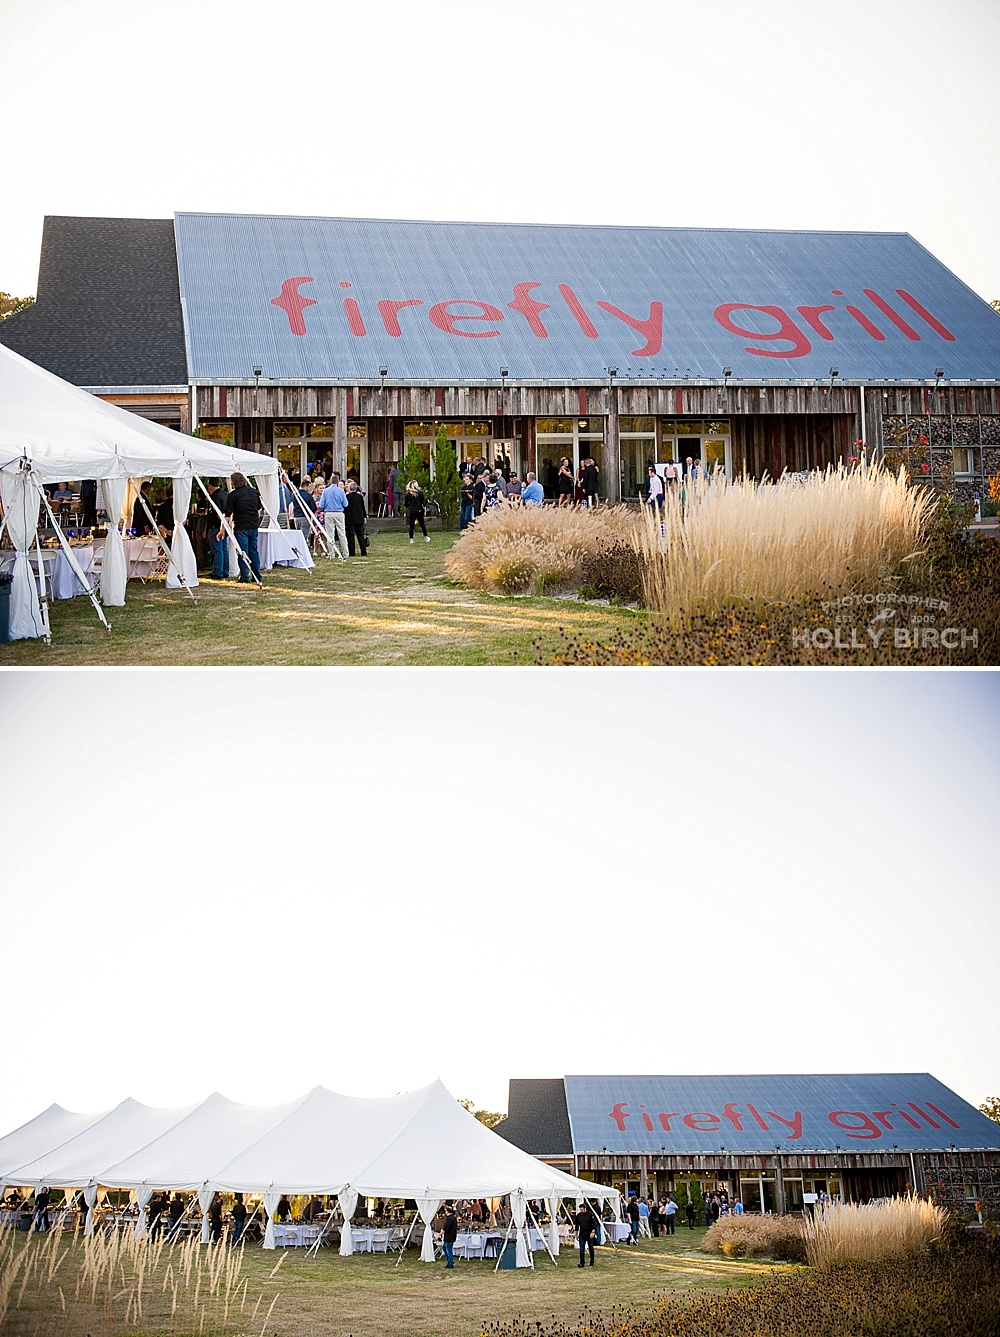 Firefly grill tent reception at sunset